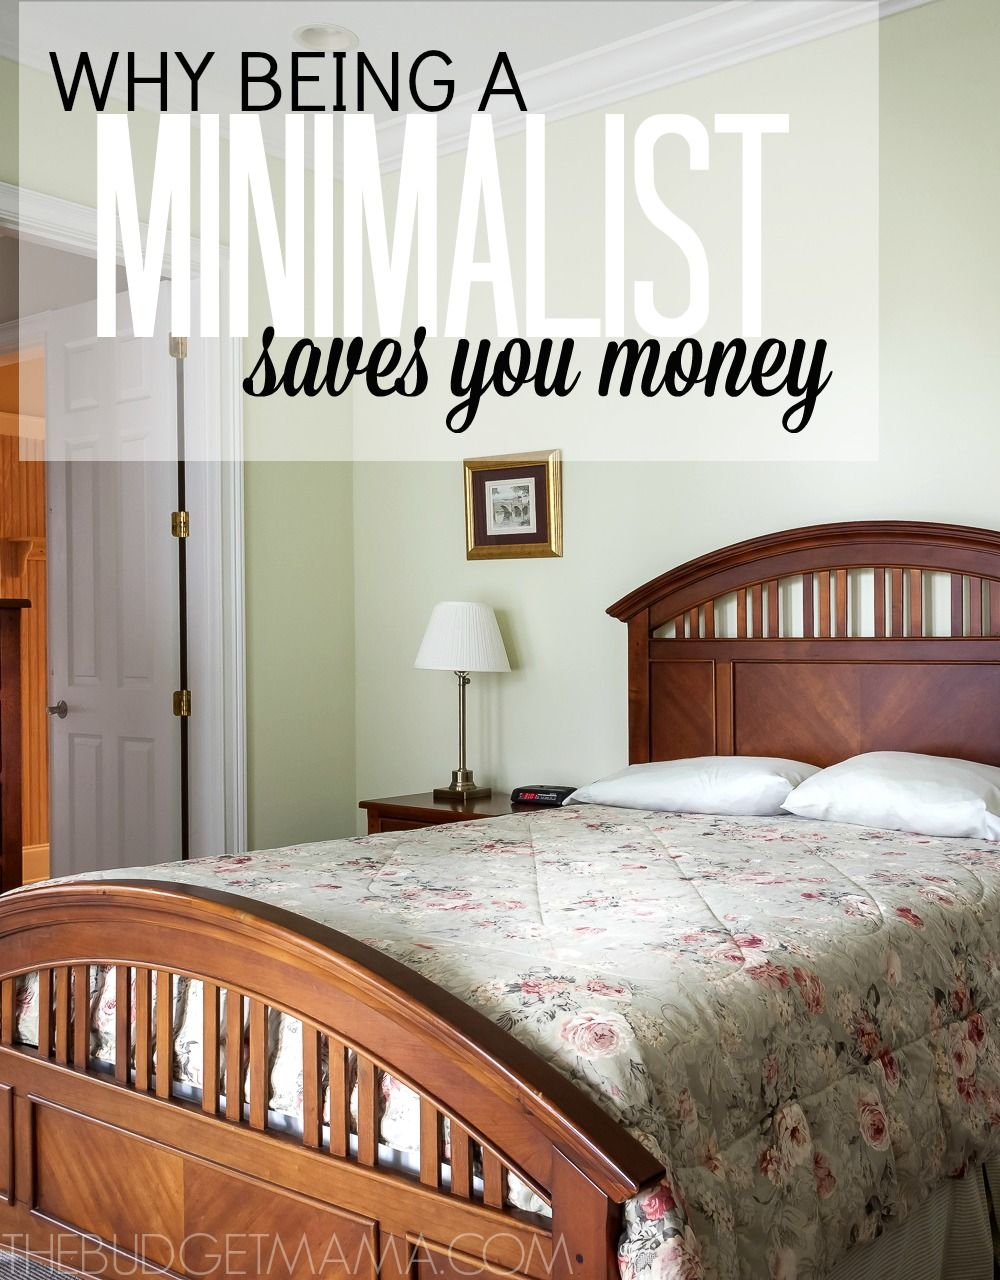 Why being a minimalist saves you money clutter and for Minimalist living money